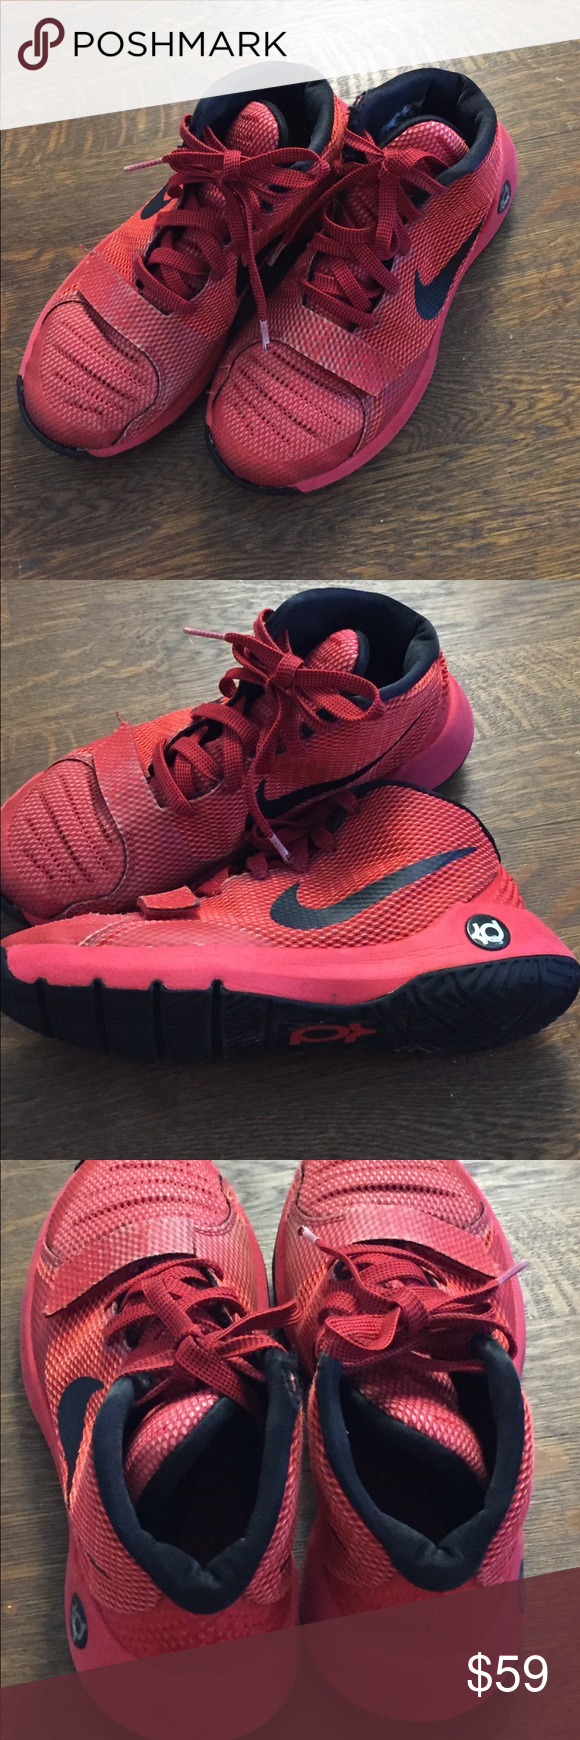 4a82e29b819 Boys Nike shoes size 5.5Y Nike Boys Shoes. Size 5.5 Youth. Color  Red. Used  for a couple of times. In very good conditions. Nike Shoes Sneakers